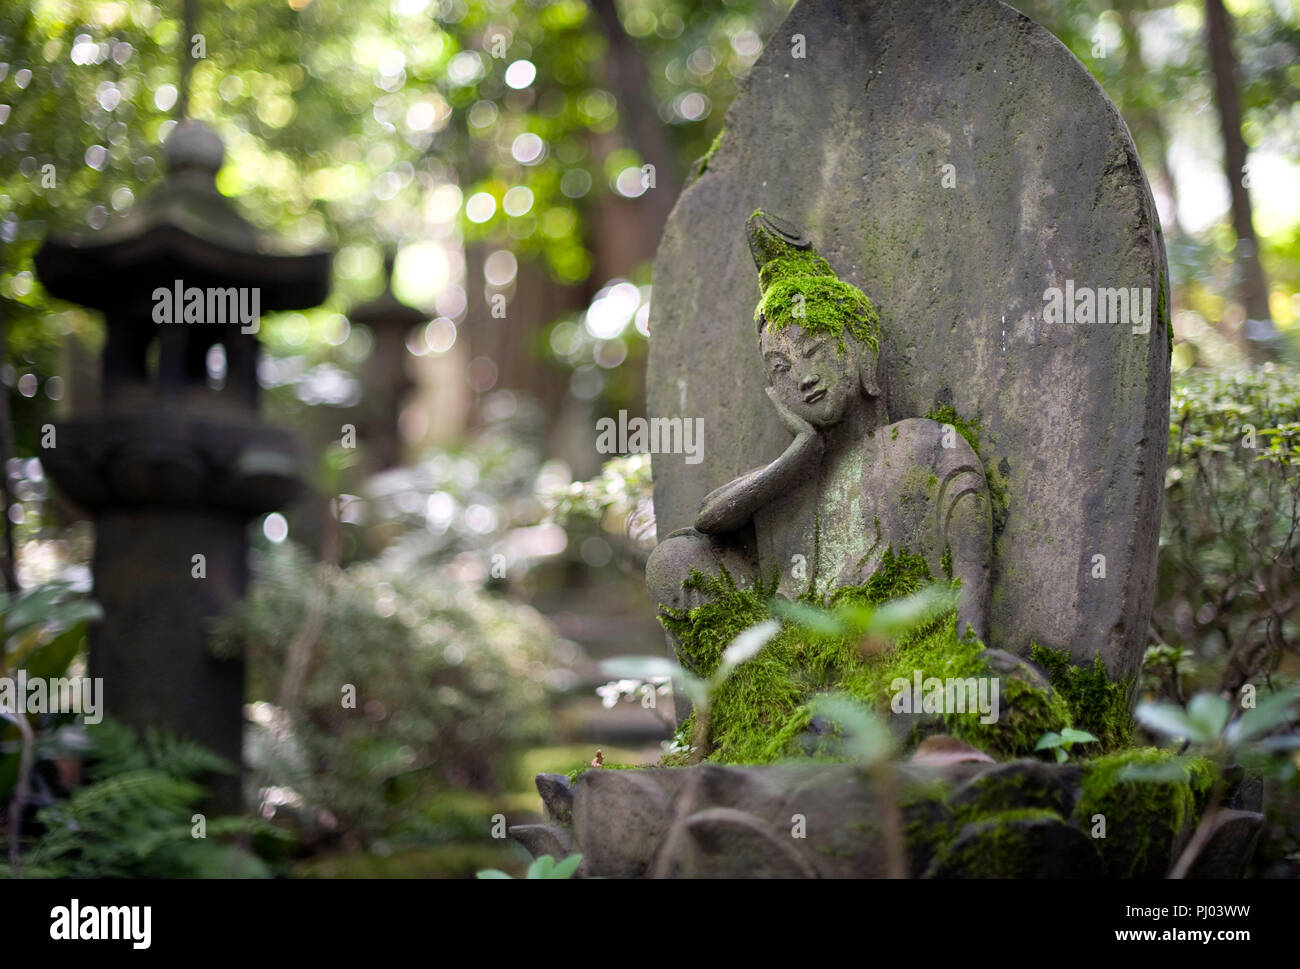 Photo shows a stone Buddha statue on display in the gardens of the Nezu Museum of Art in, Tokyo, Japan on 17 Sept. 2012. The  museum was  first concep Stock Photo